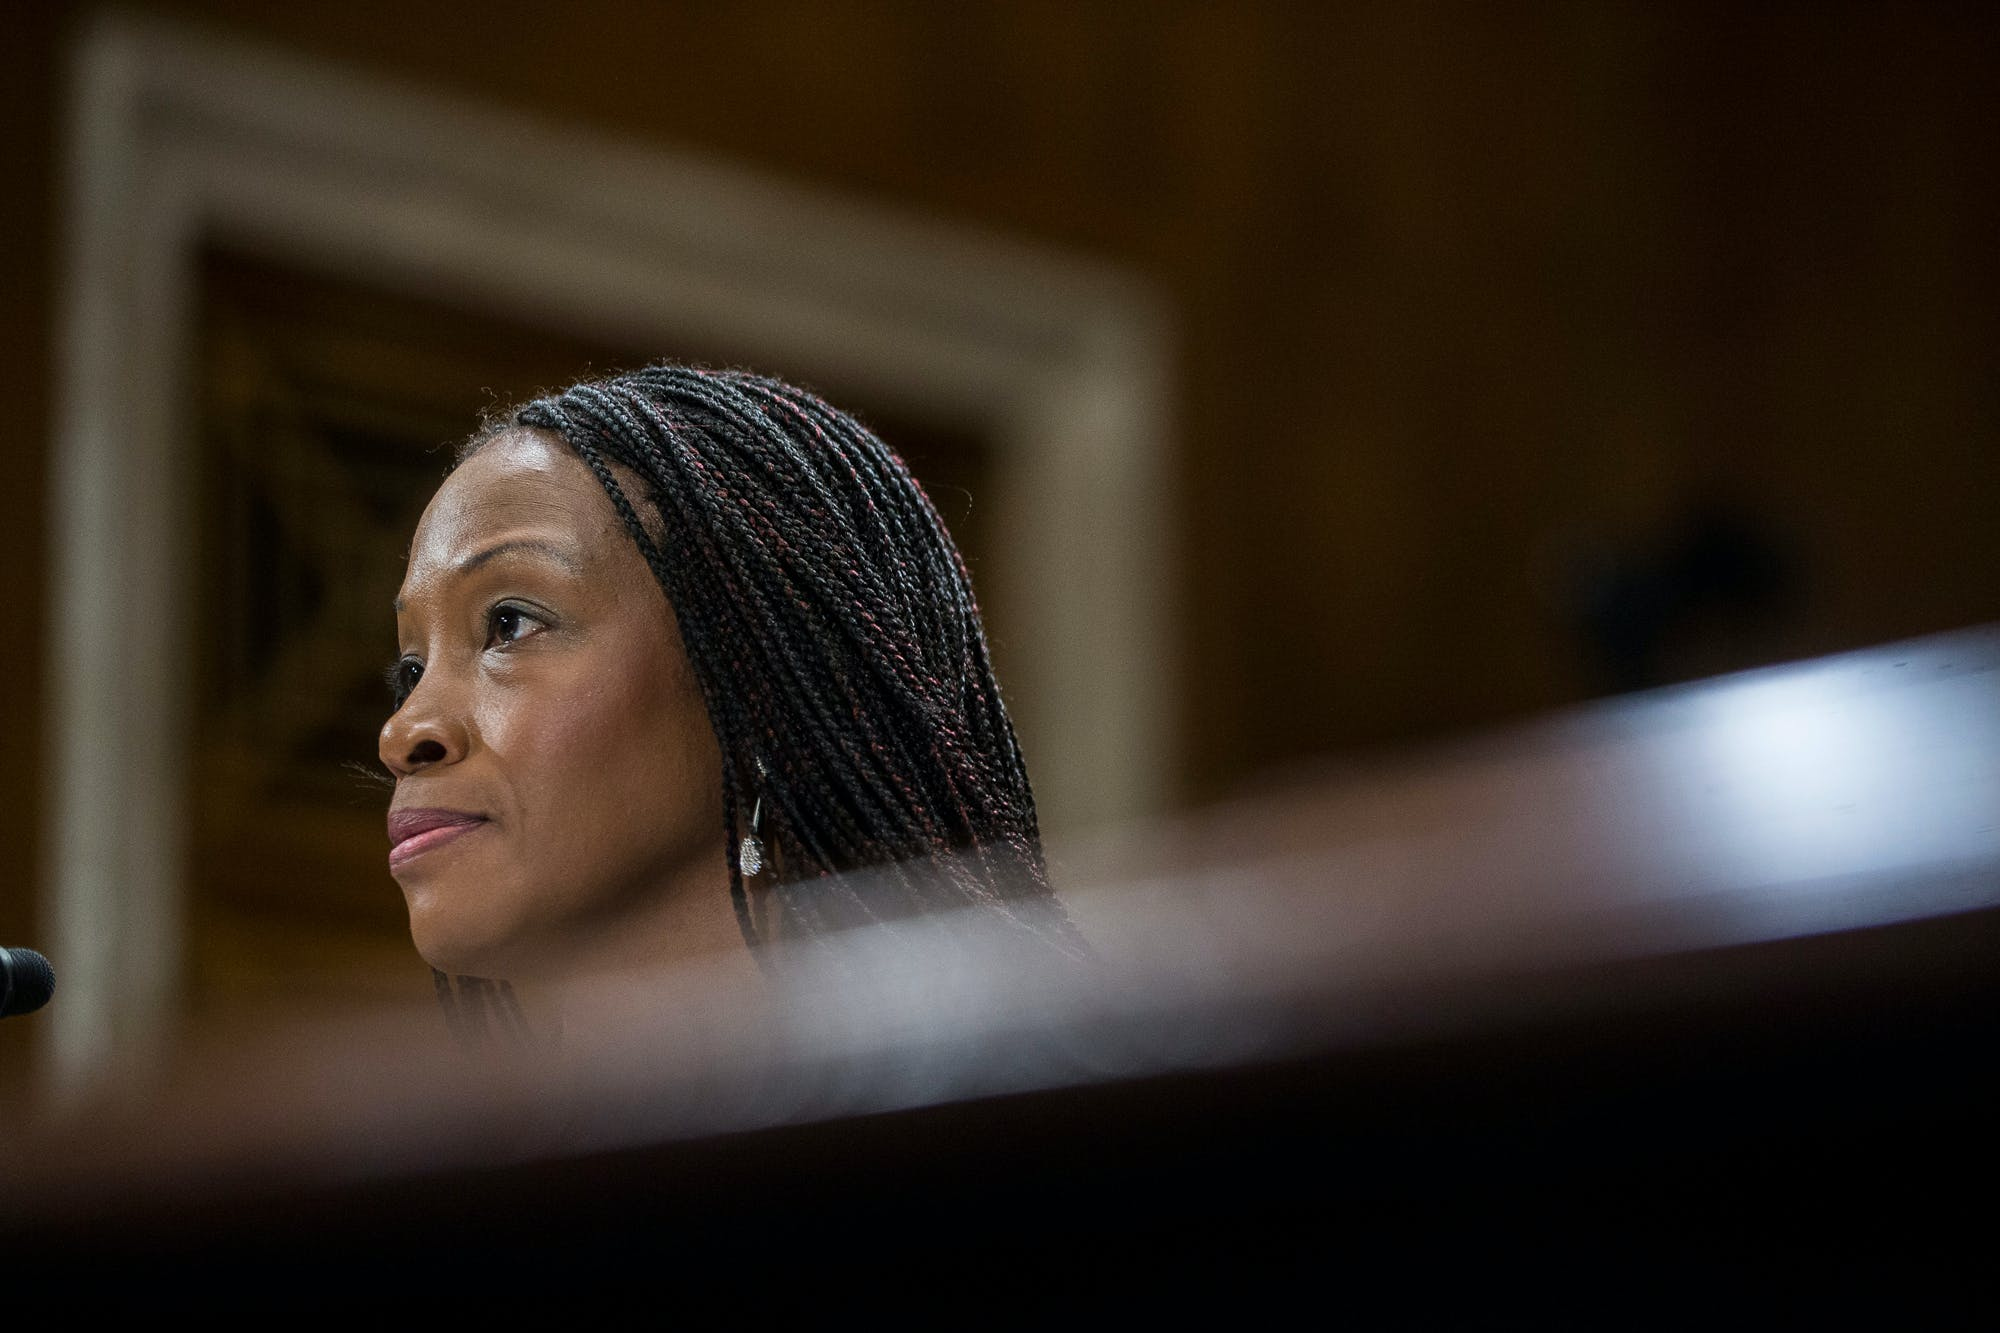 Nominee to be Director for the Fish and Wildlife Service Aurelia Skipwith testifies during a Senate Environment and Public Works Committee confirmation hearing on September 11, 2019 in Washington, DC.